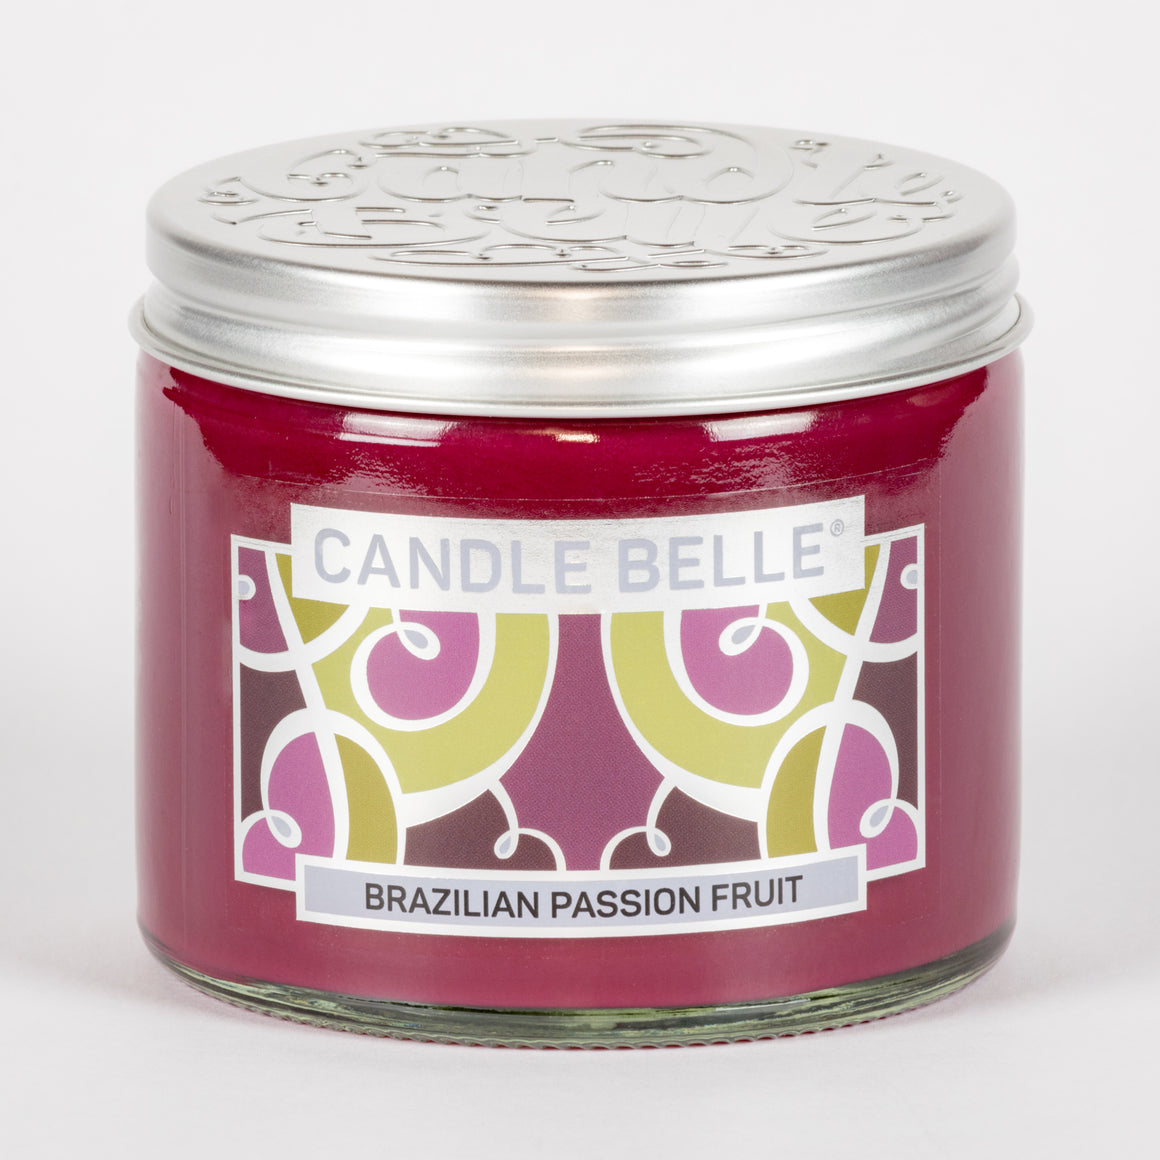 Candle Belle® Brazilian Passion Fruit Fragranced Twin Wick Jar Candle 240g (3 Pack)